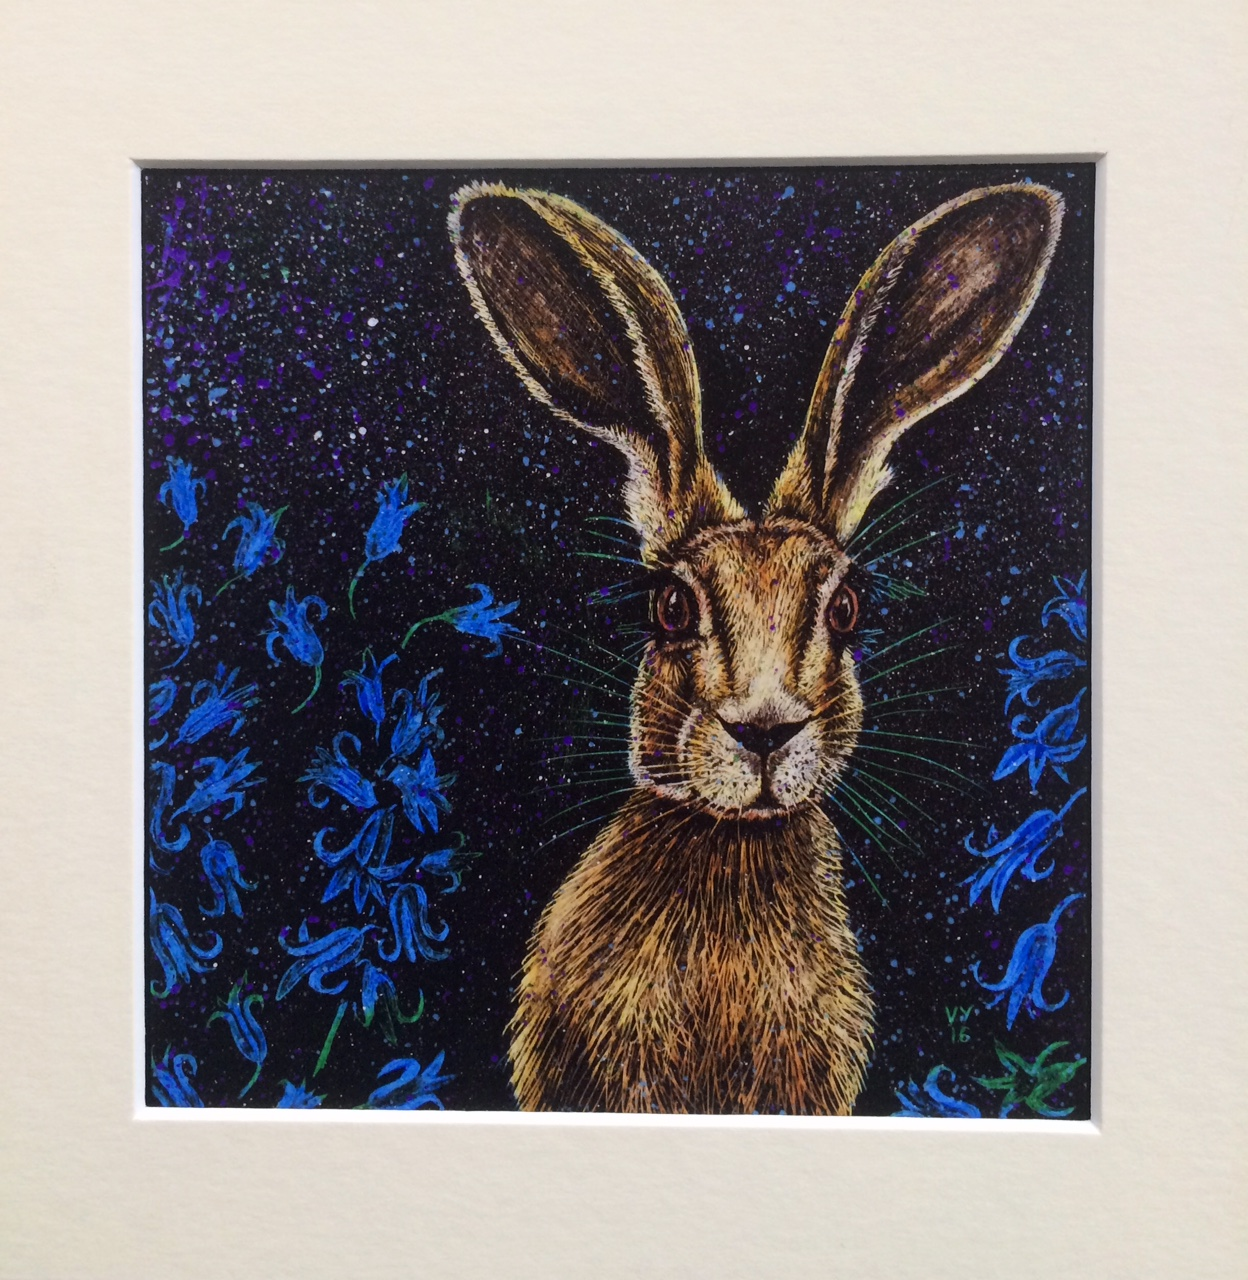 'Bluebell' mounted print